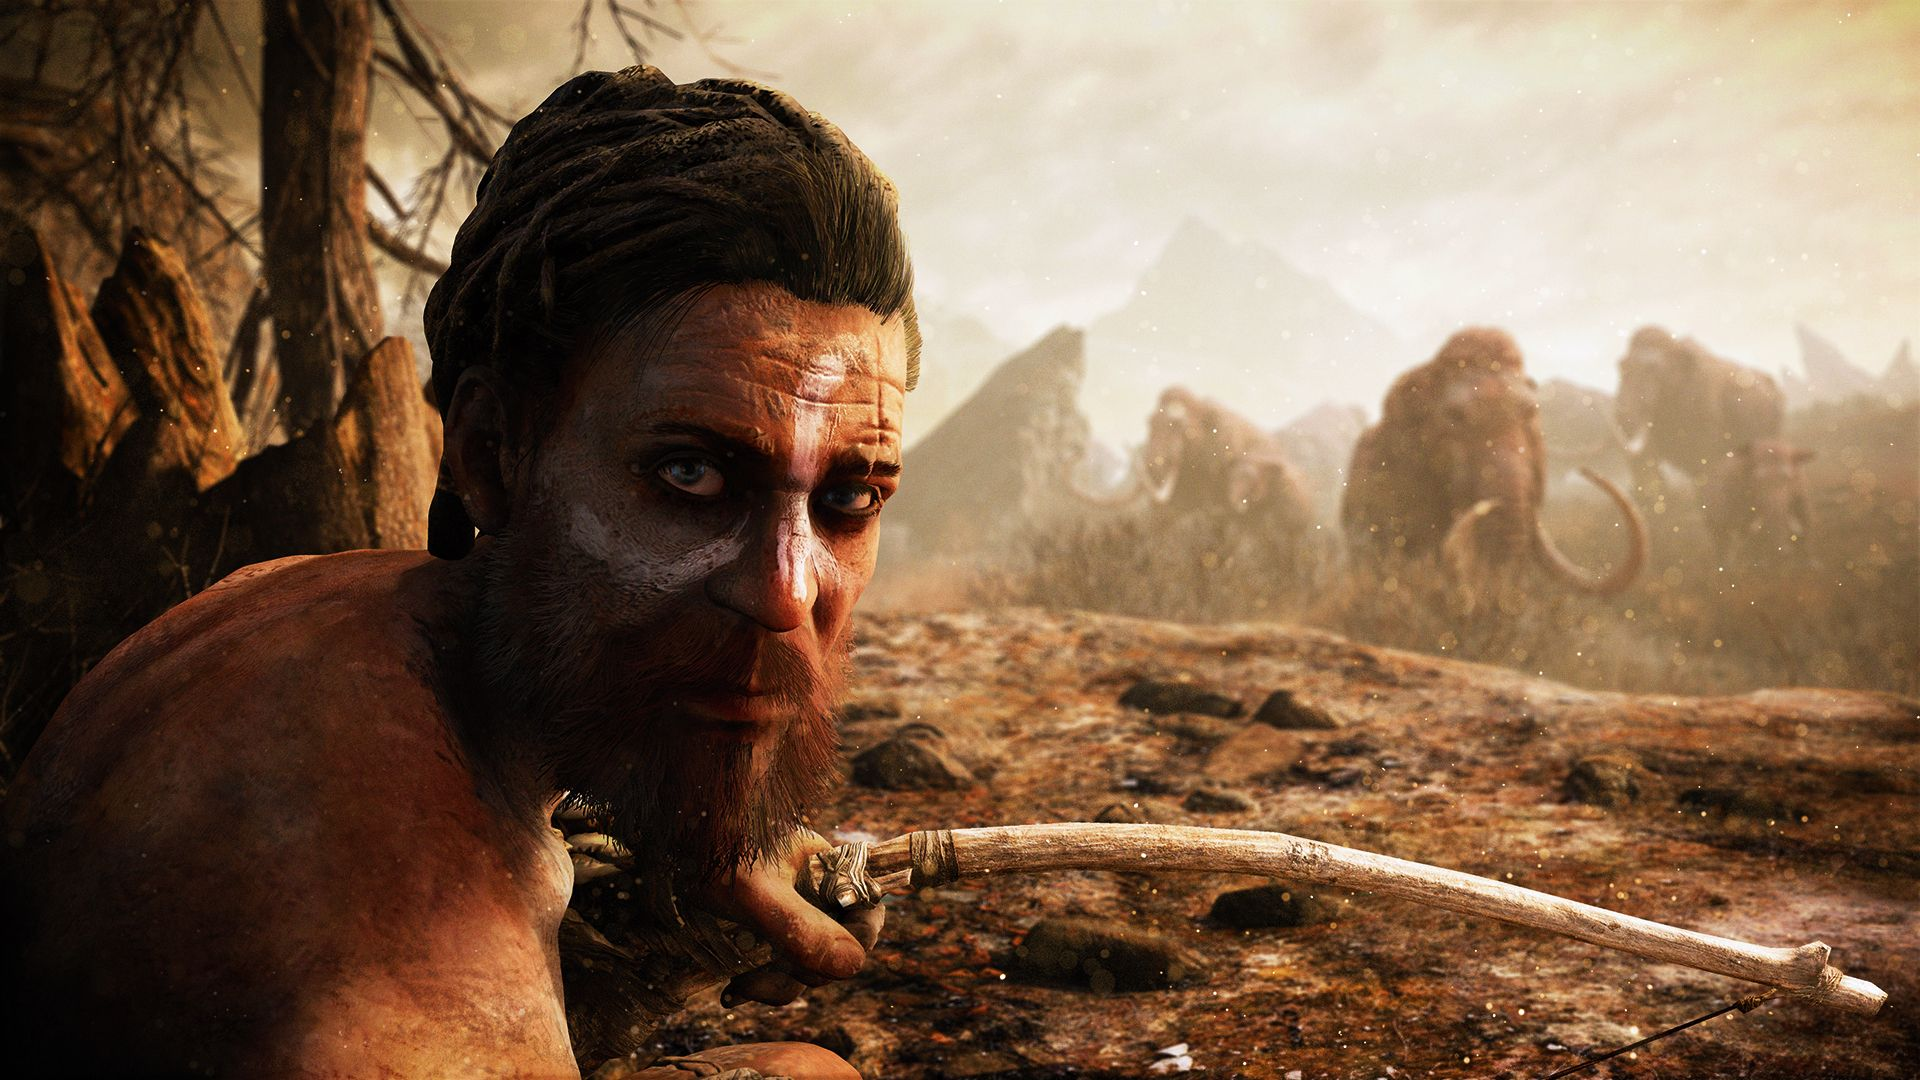 Far Cry Primal - does it matter if it's realistic?